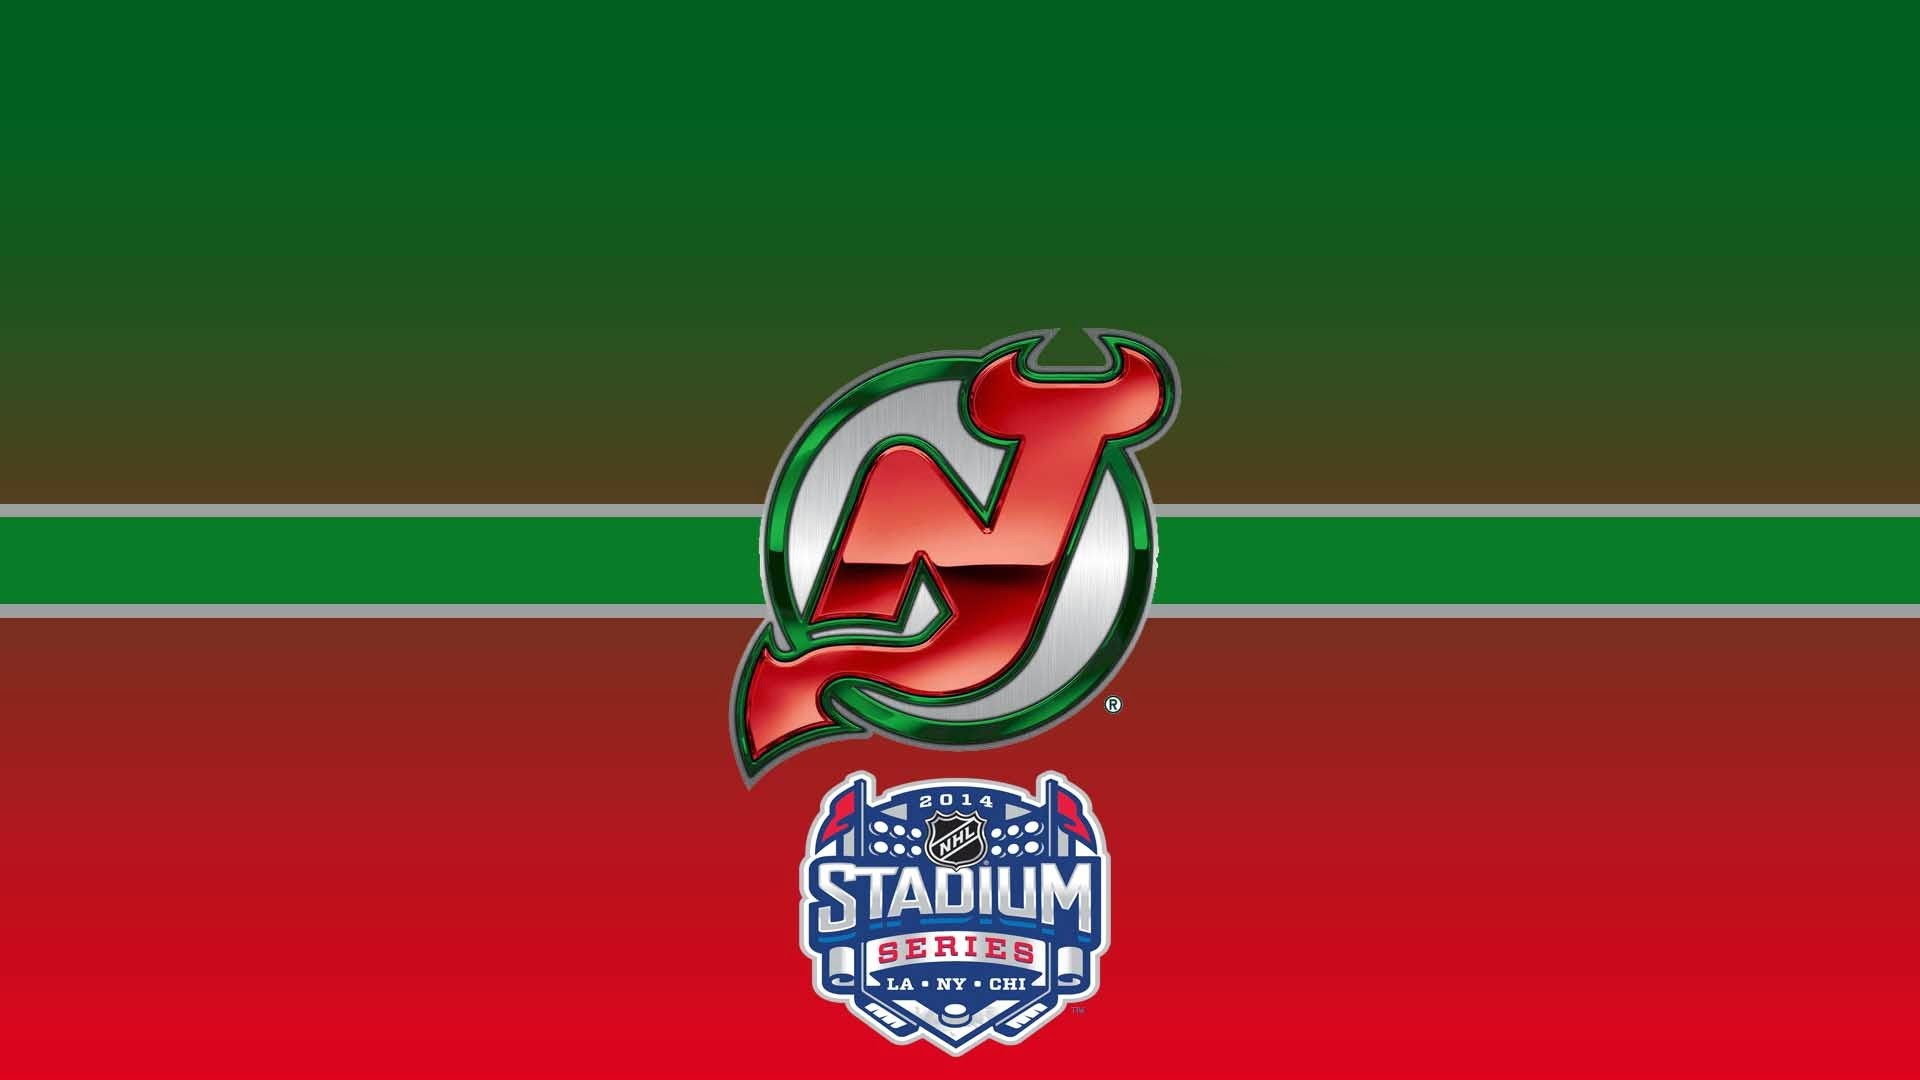 … new jersey devils stadium series wallpaper you can …